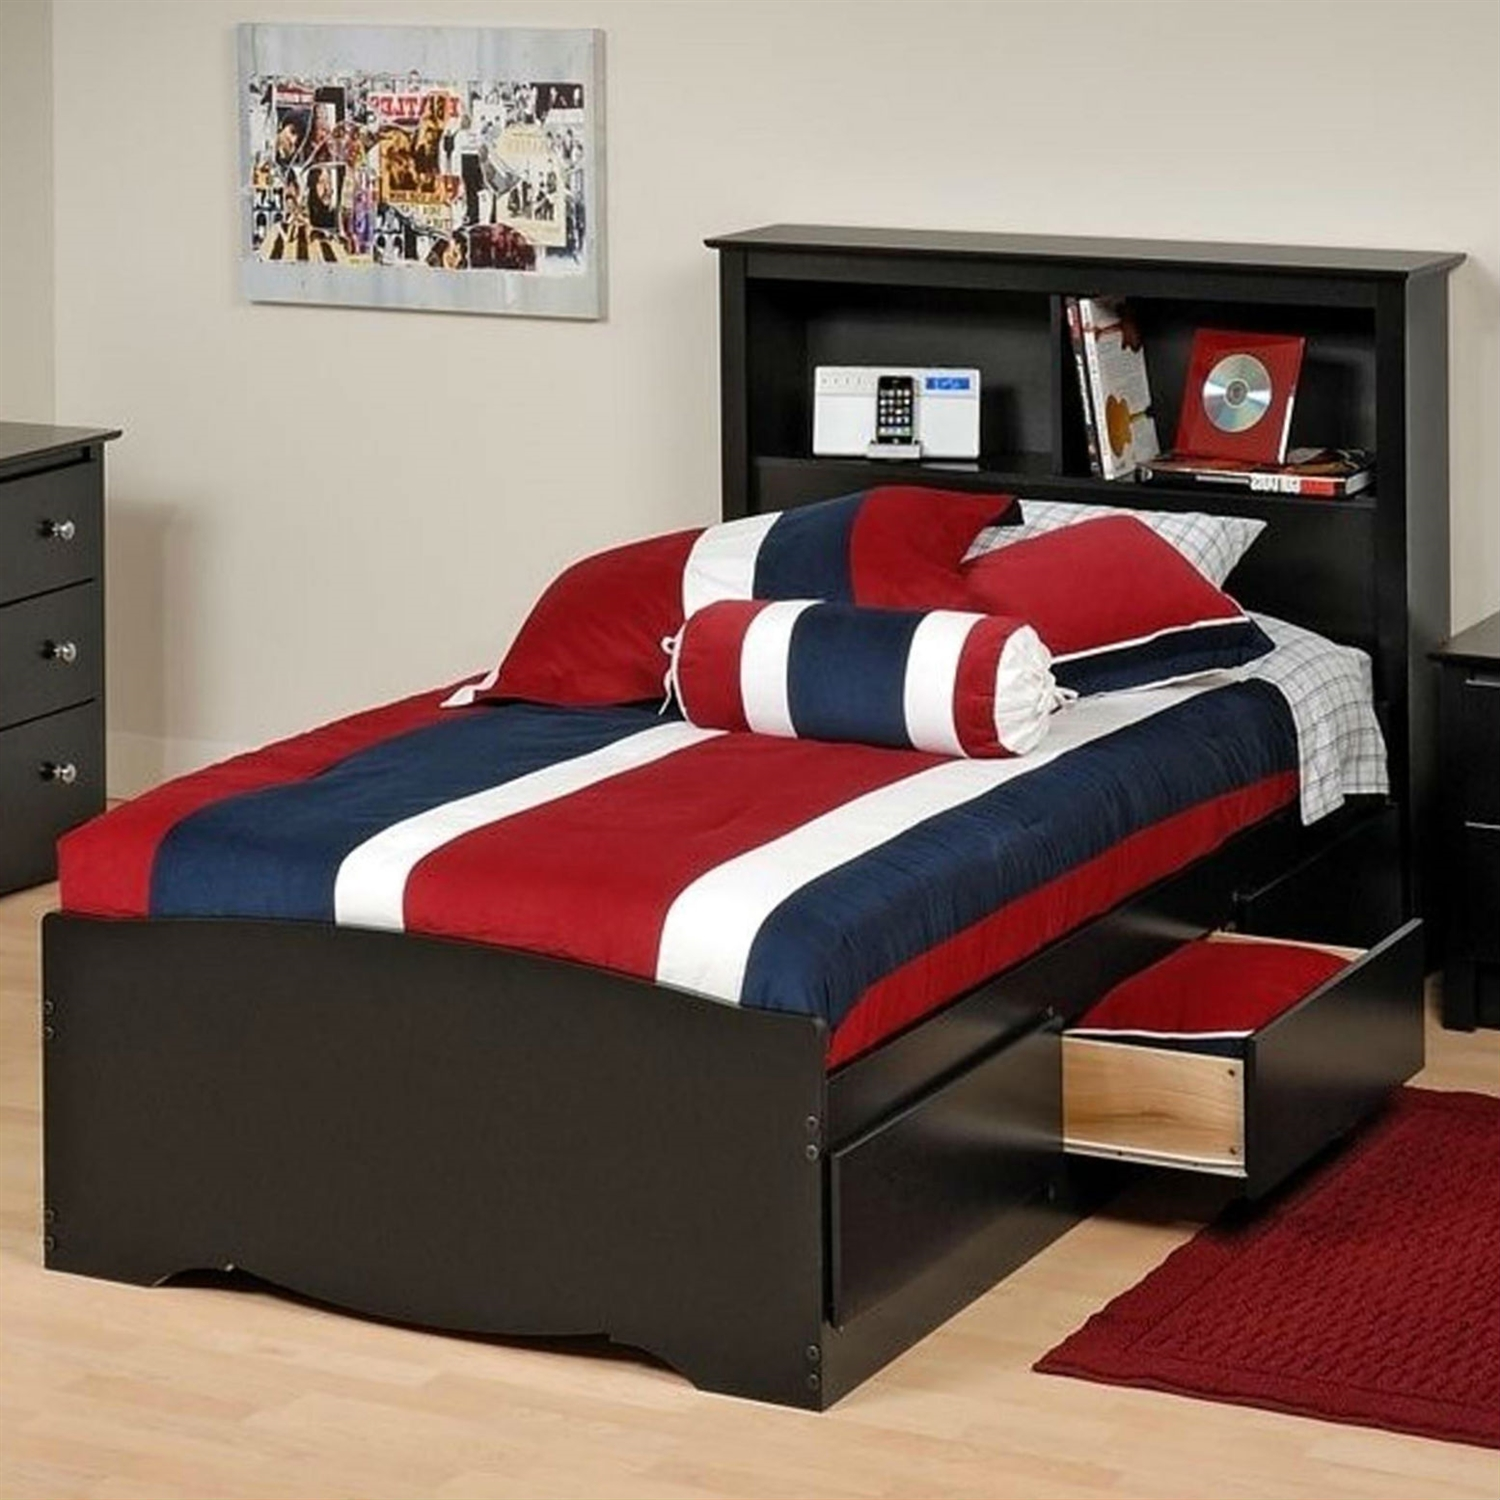 Twin Xl Platform Bed With Bookcase Headboard Amp 3 Storage